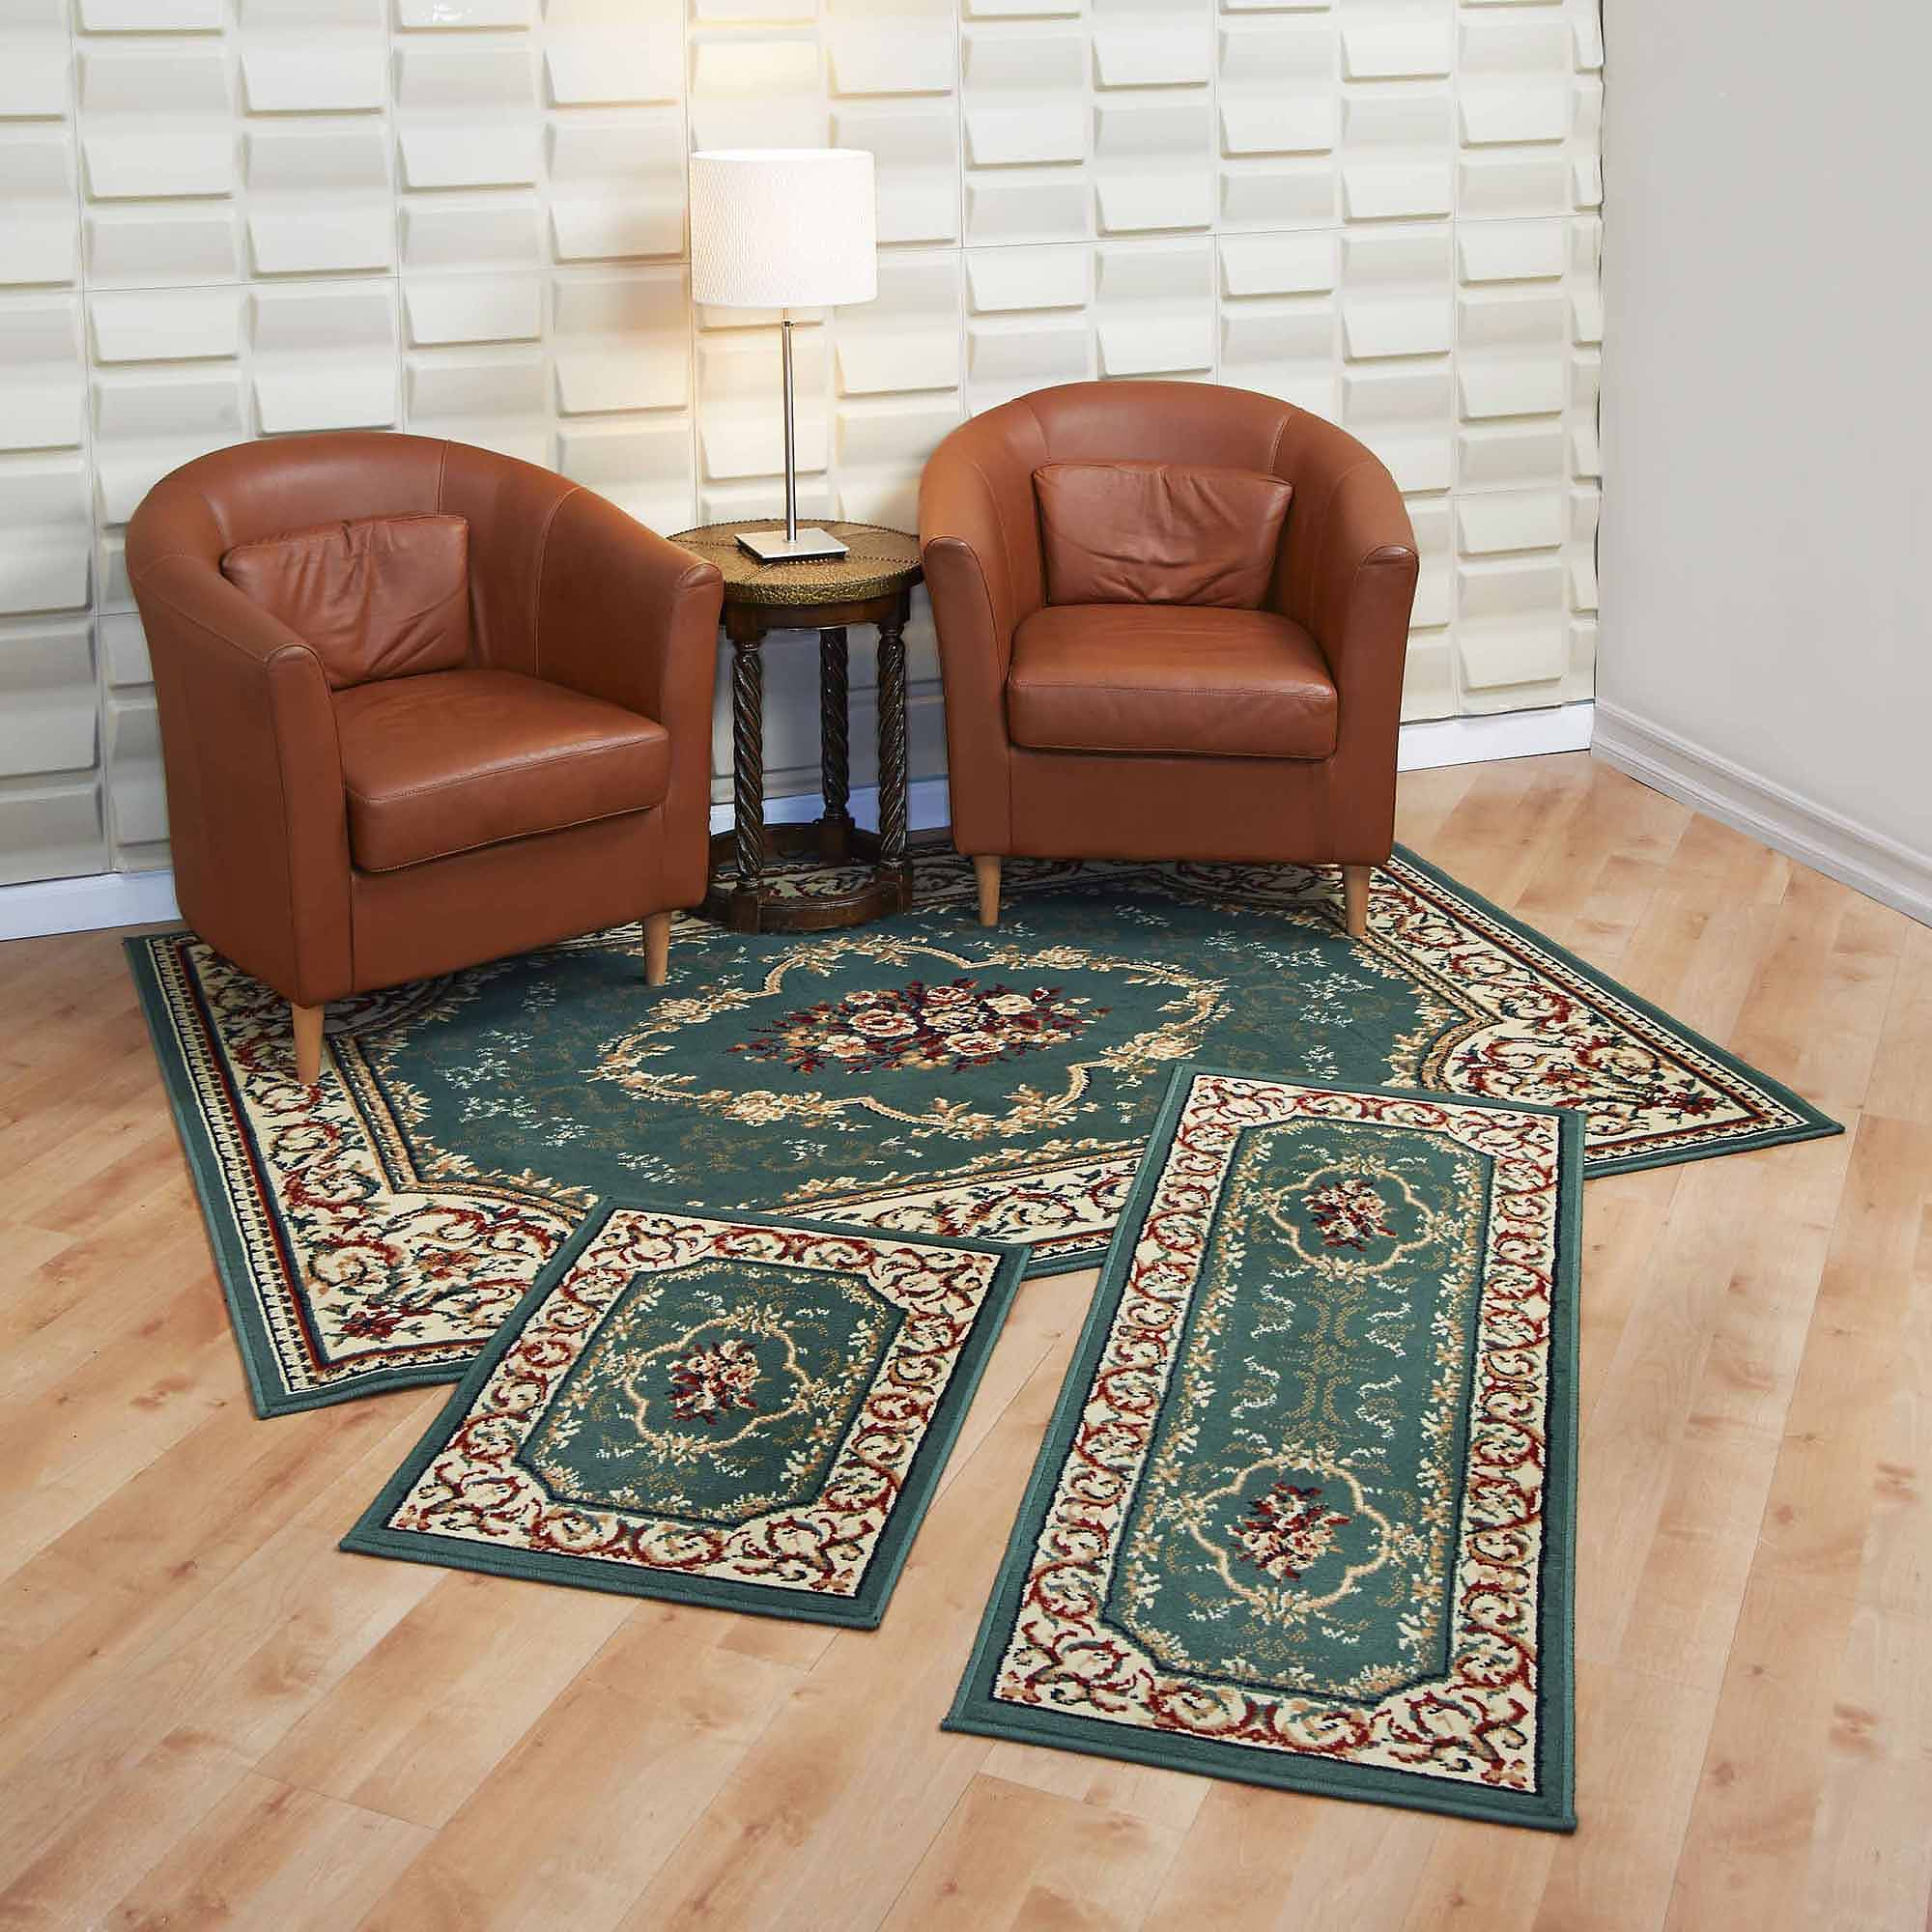 Area rug set 3 pc green rose garden living room soft pile - Living room area rugs ...